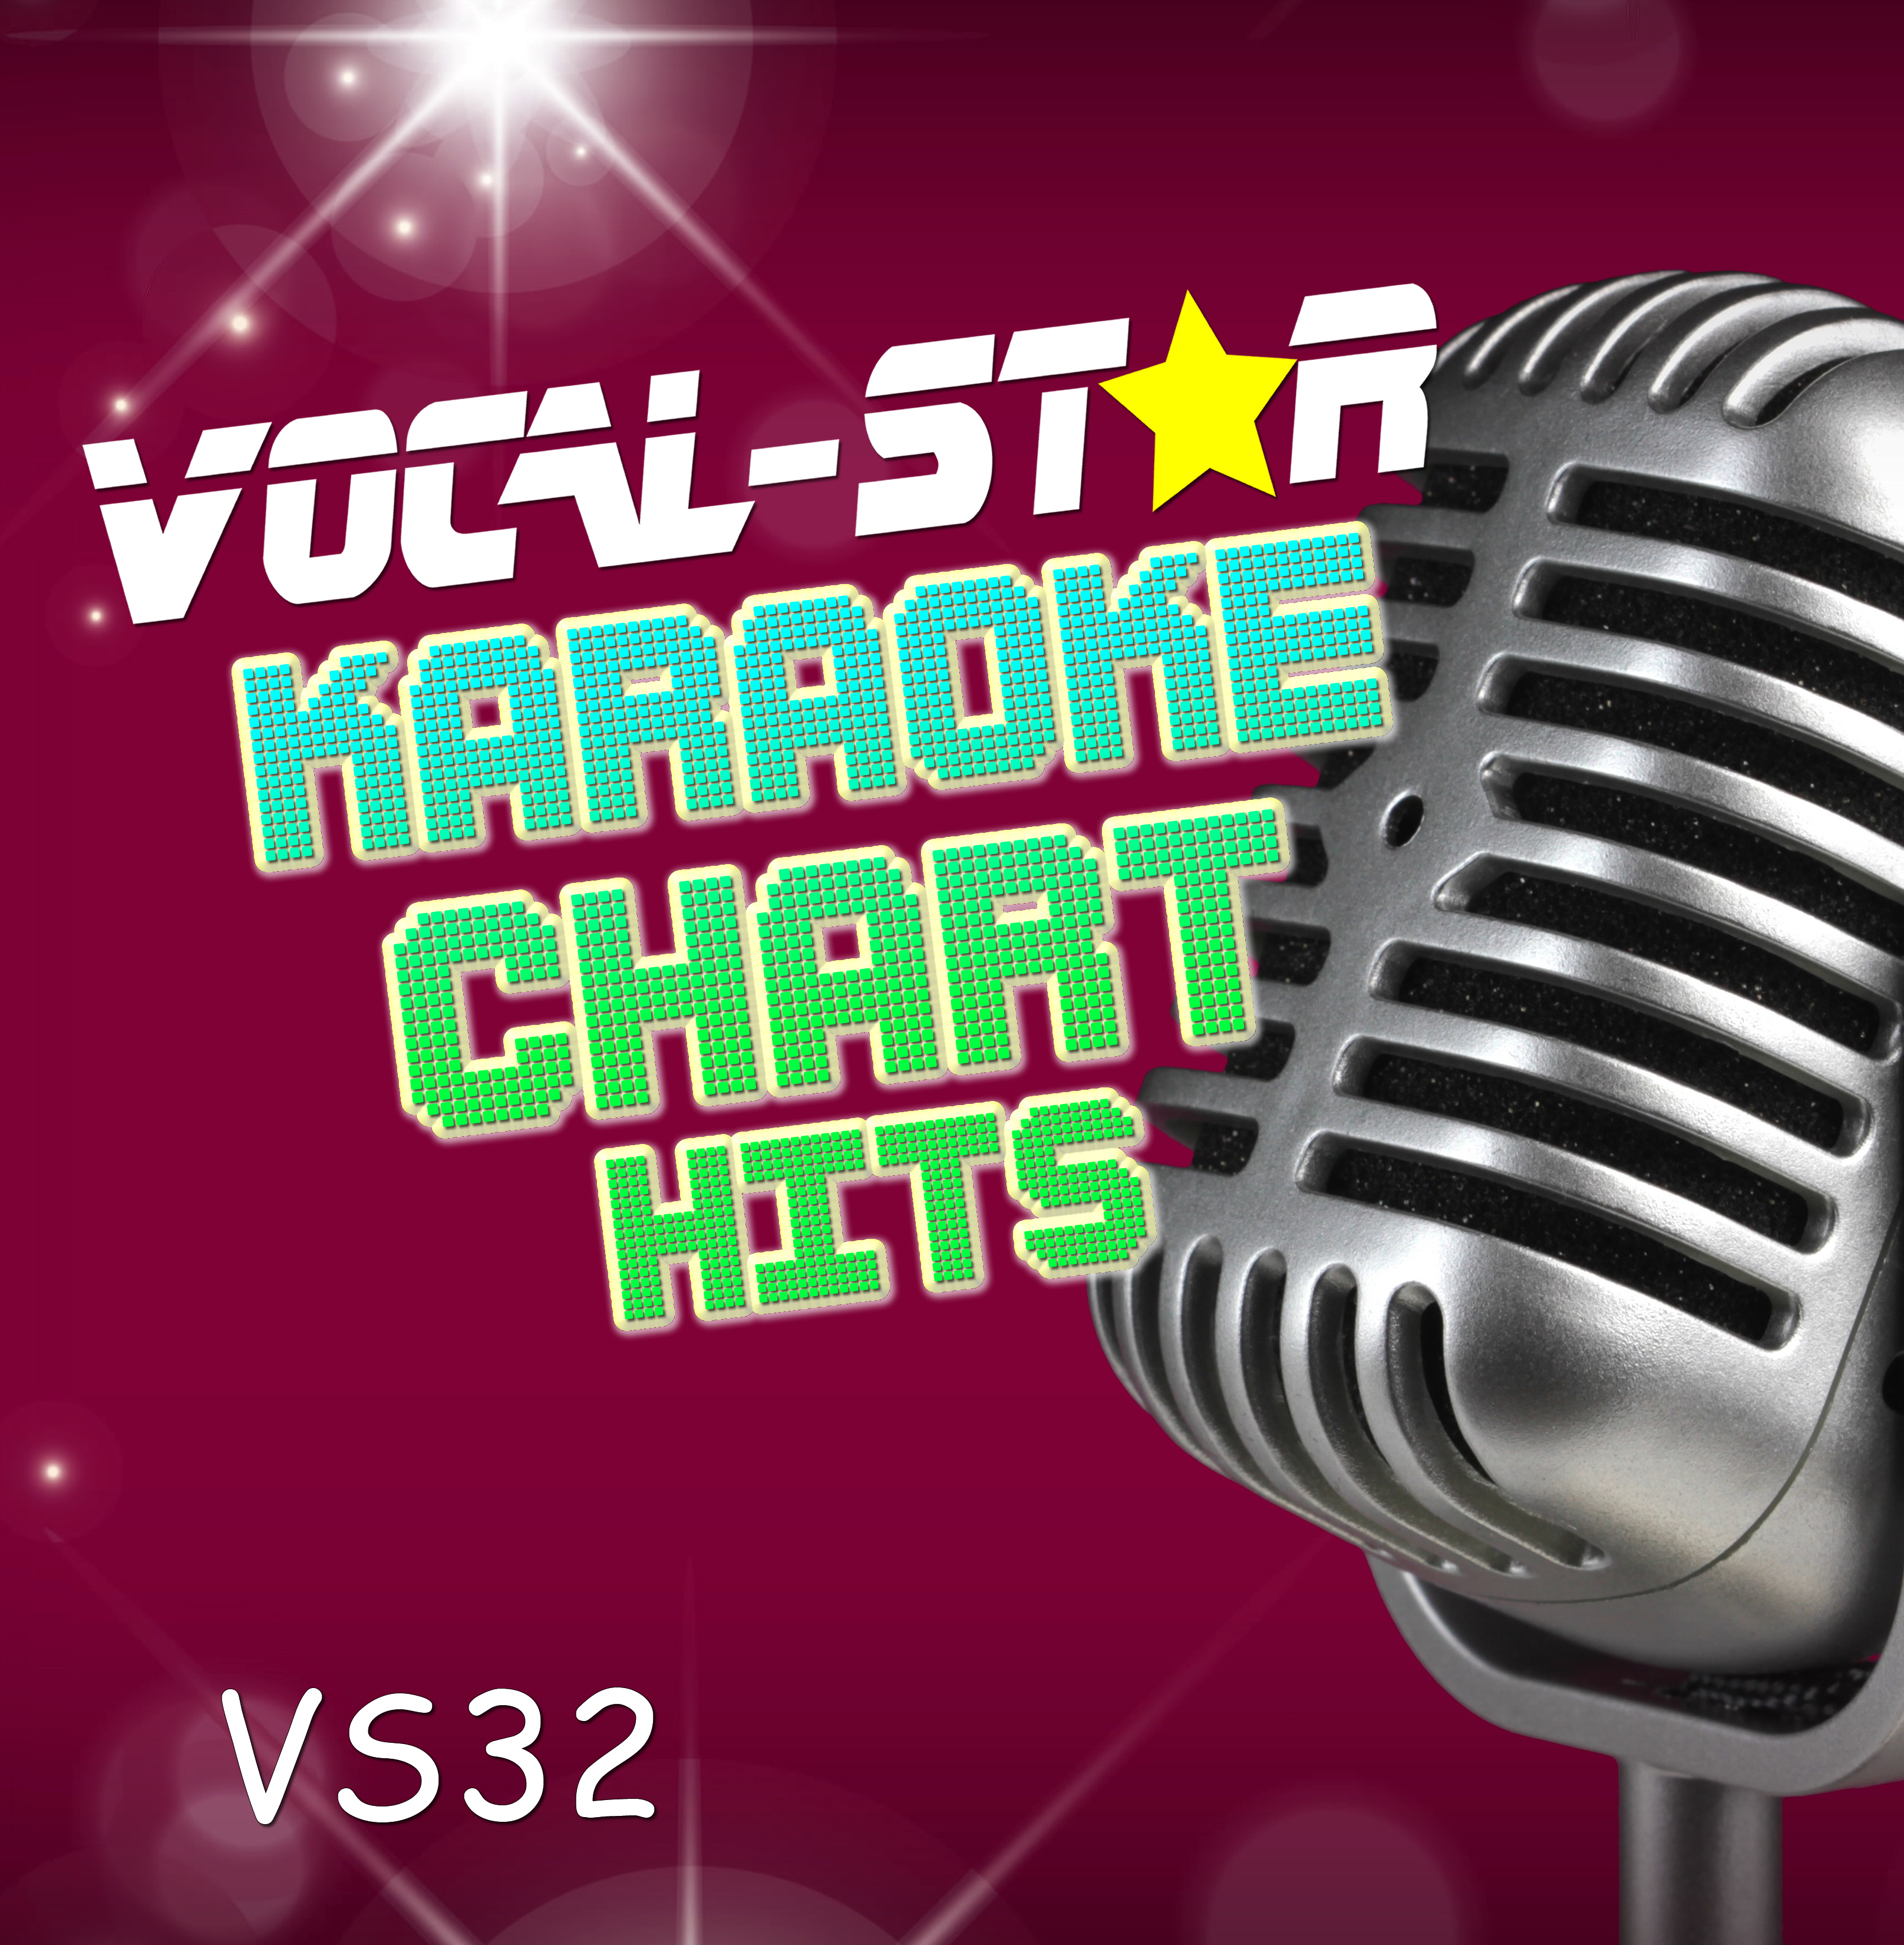 Vocal-Star VS32 Hits of September and October Digital Download